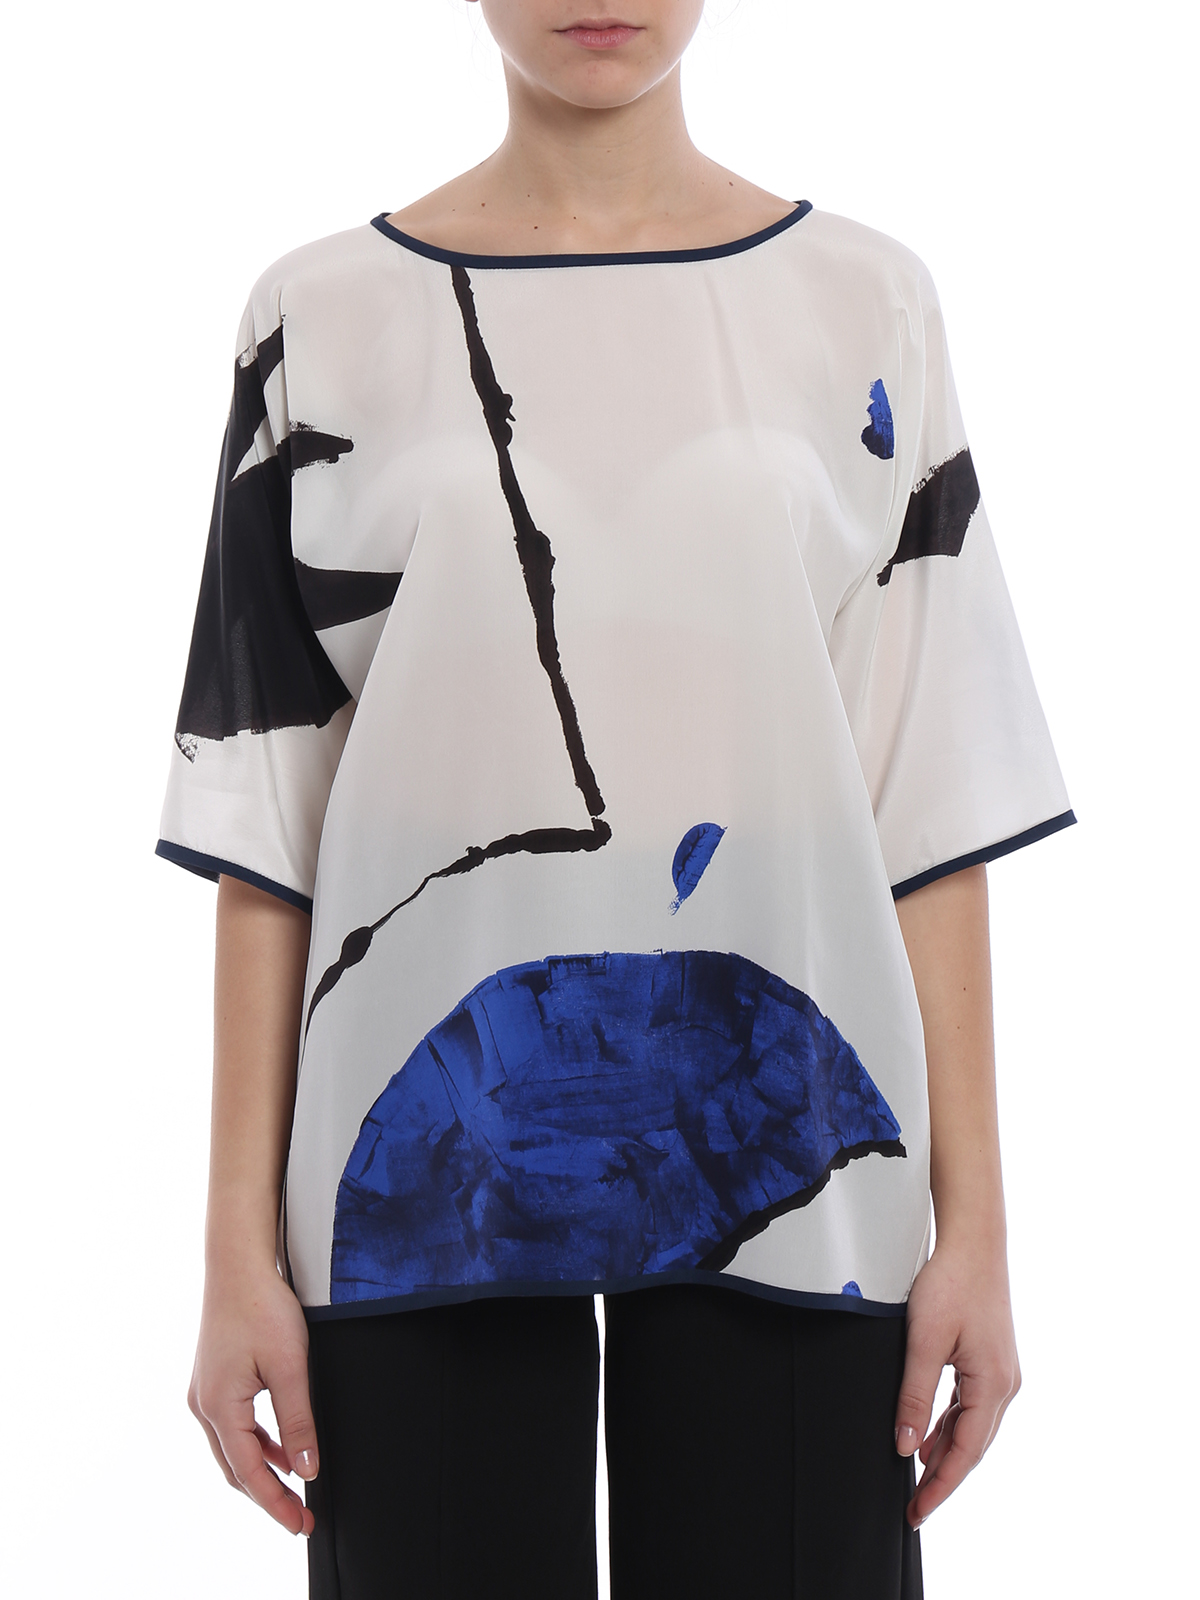 Cheapest Price Clearance Shop For cropped sleeve blouse - Blue Max Mara IRhNq1Nin7